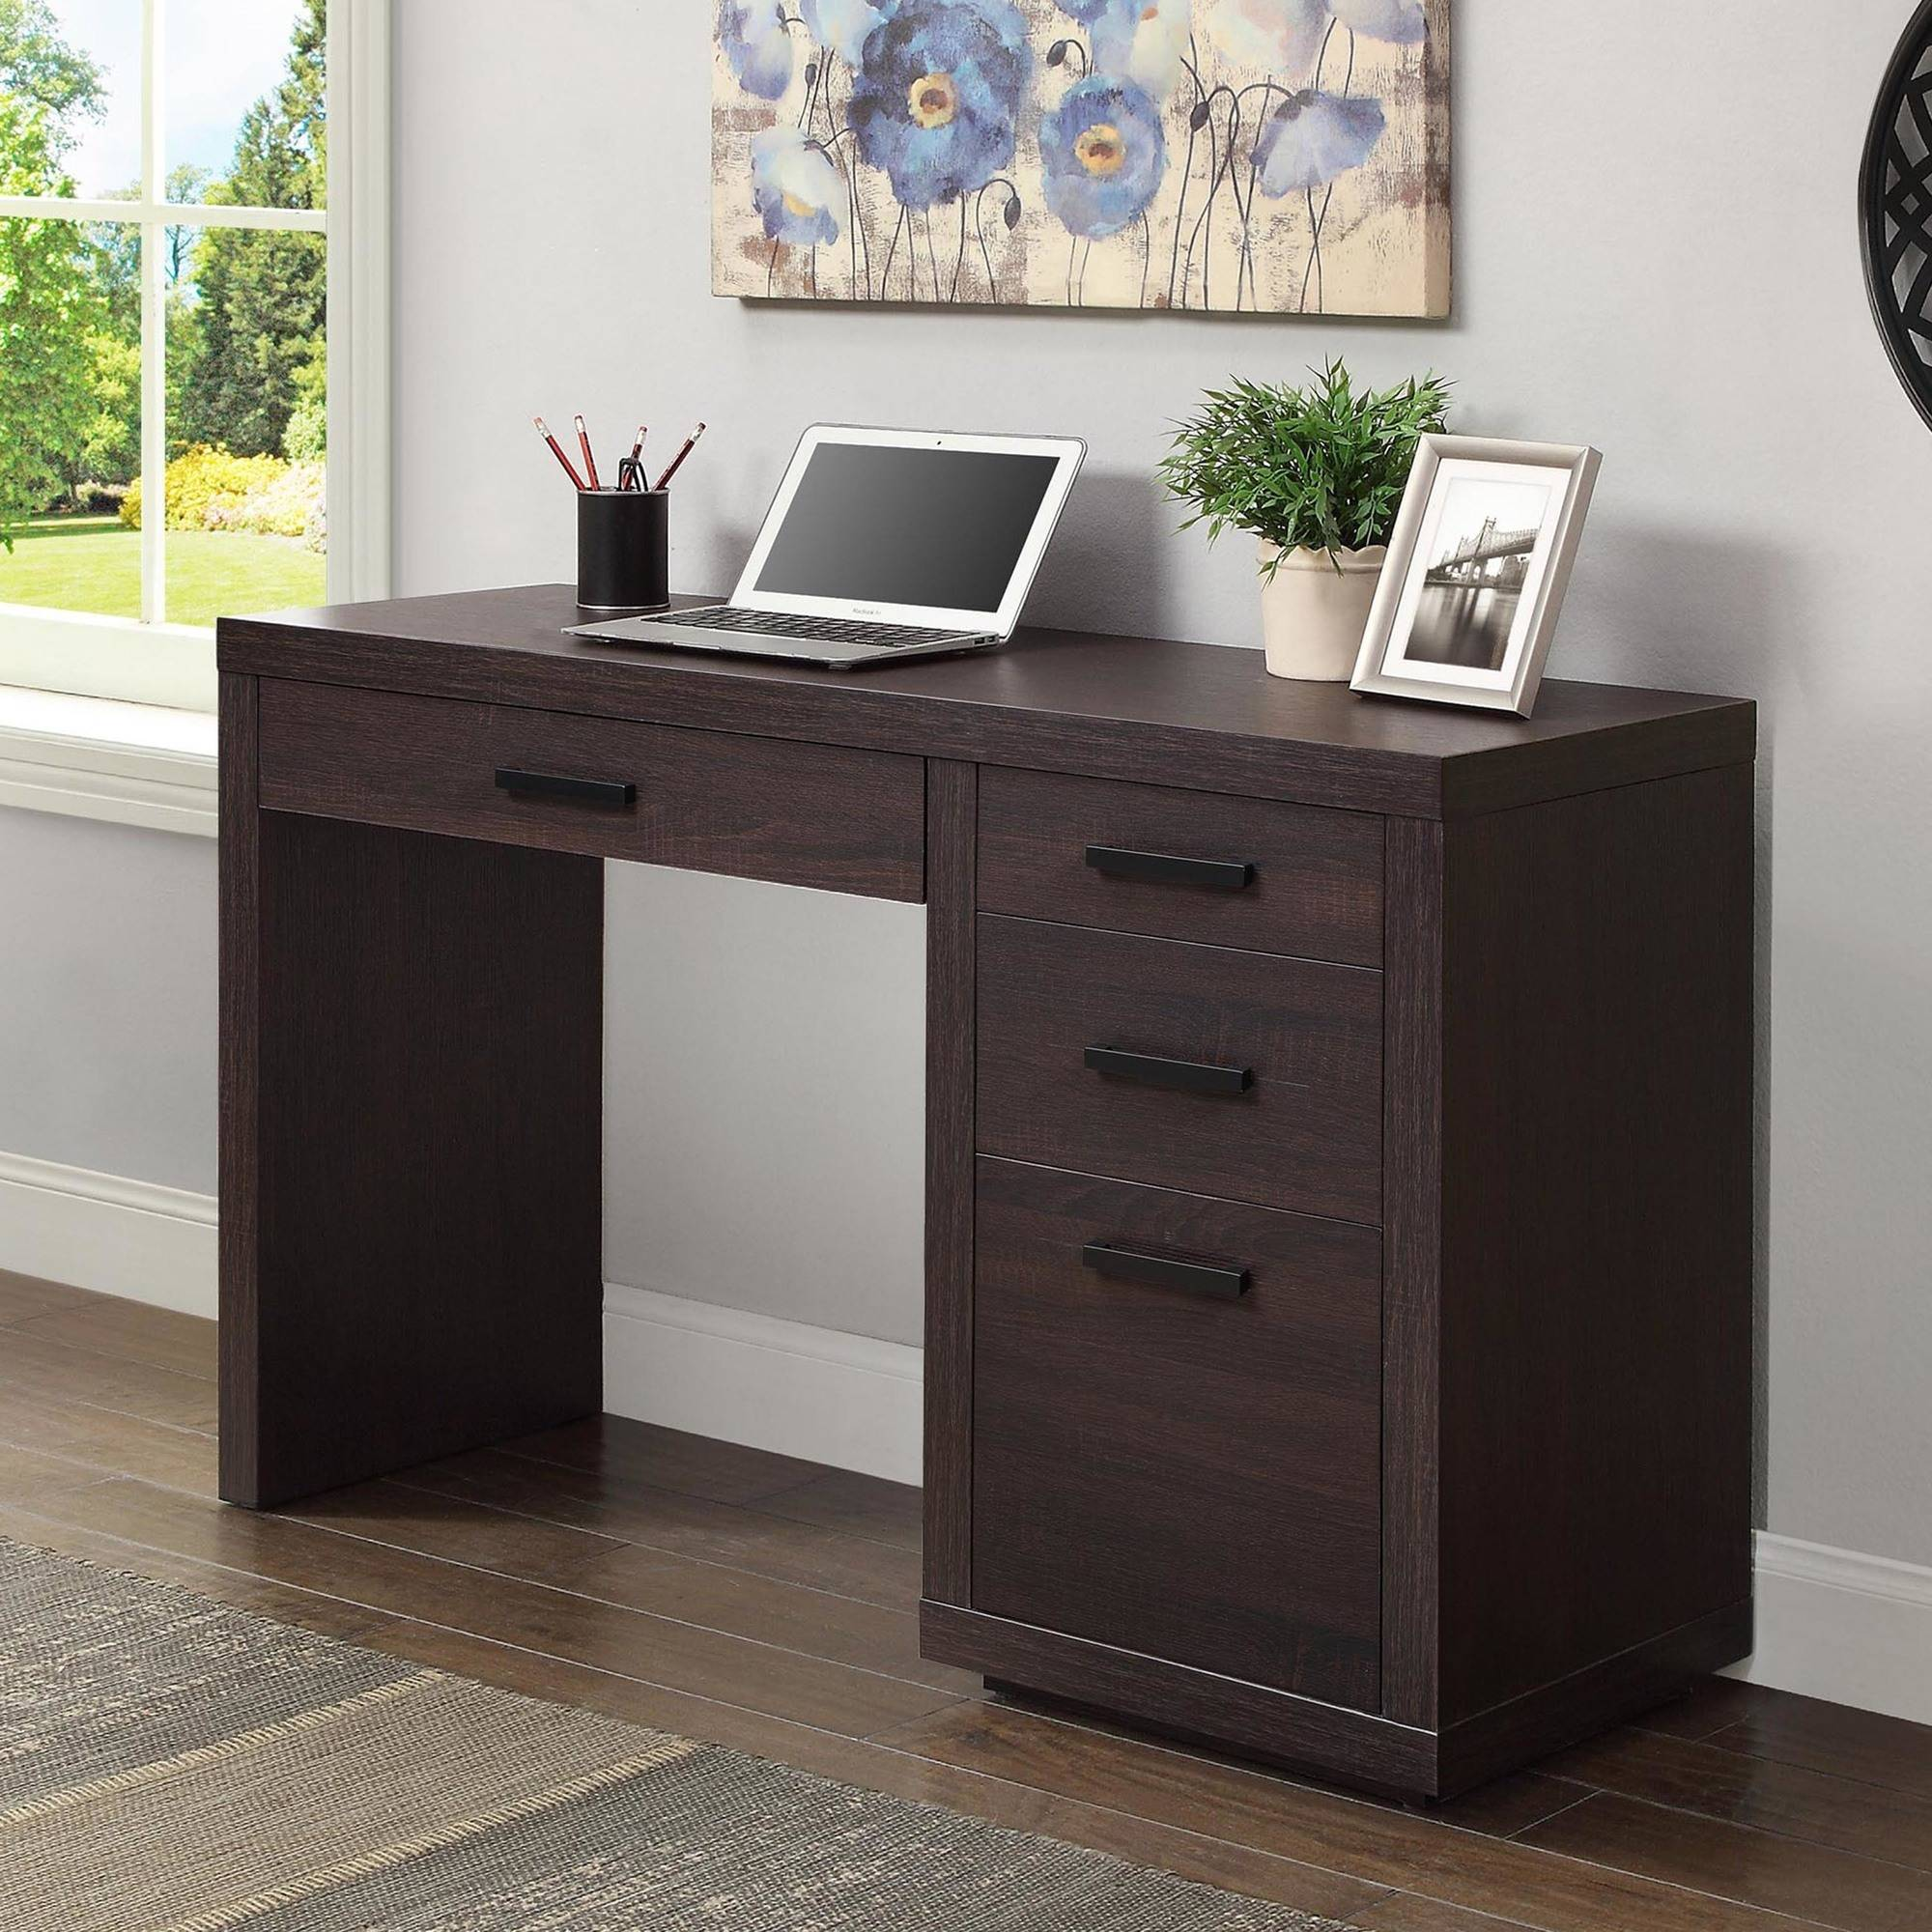 Better Homes & Gardens Steele Writing Desk, Espresso Finish